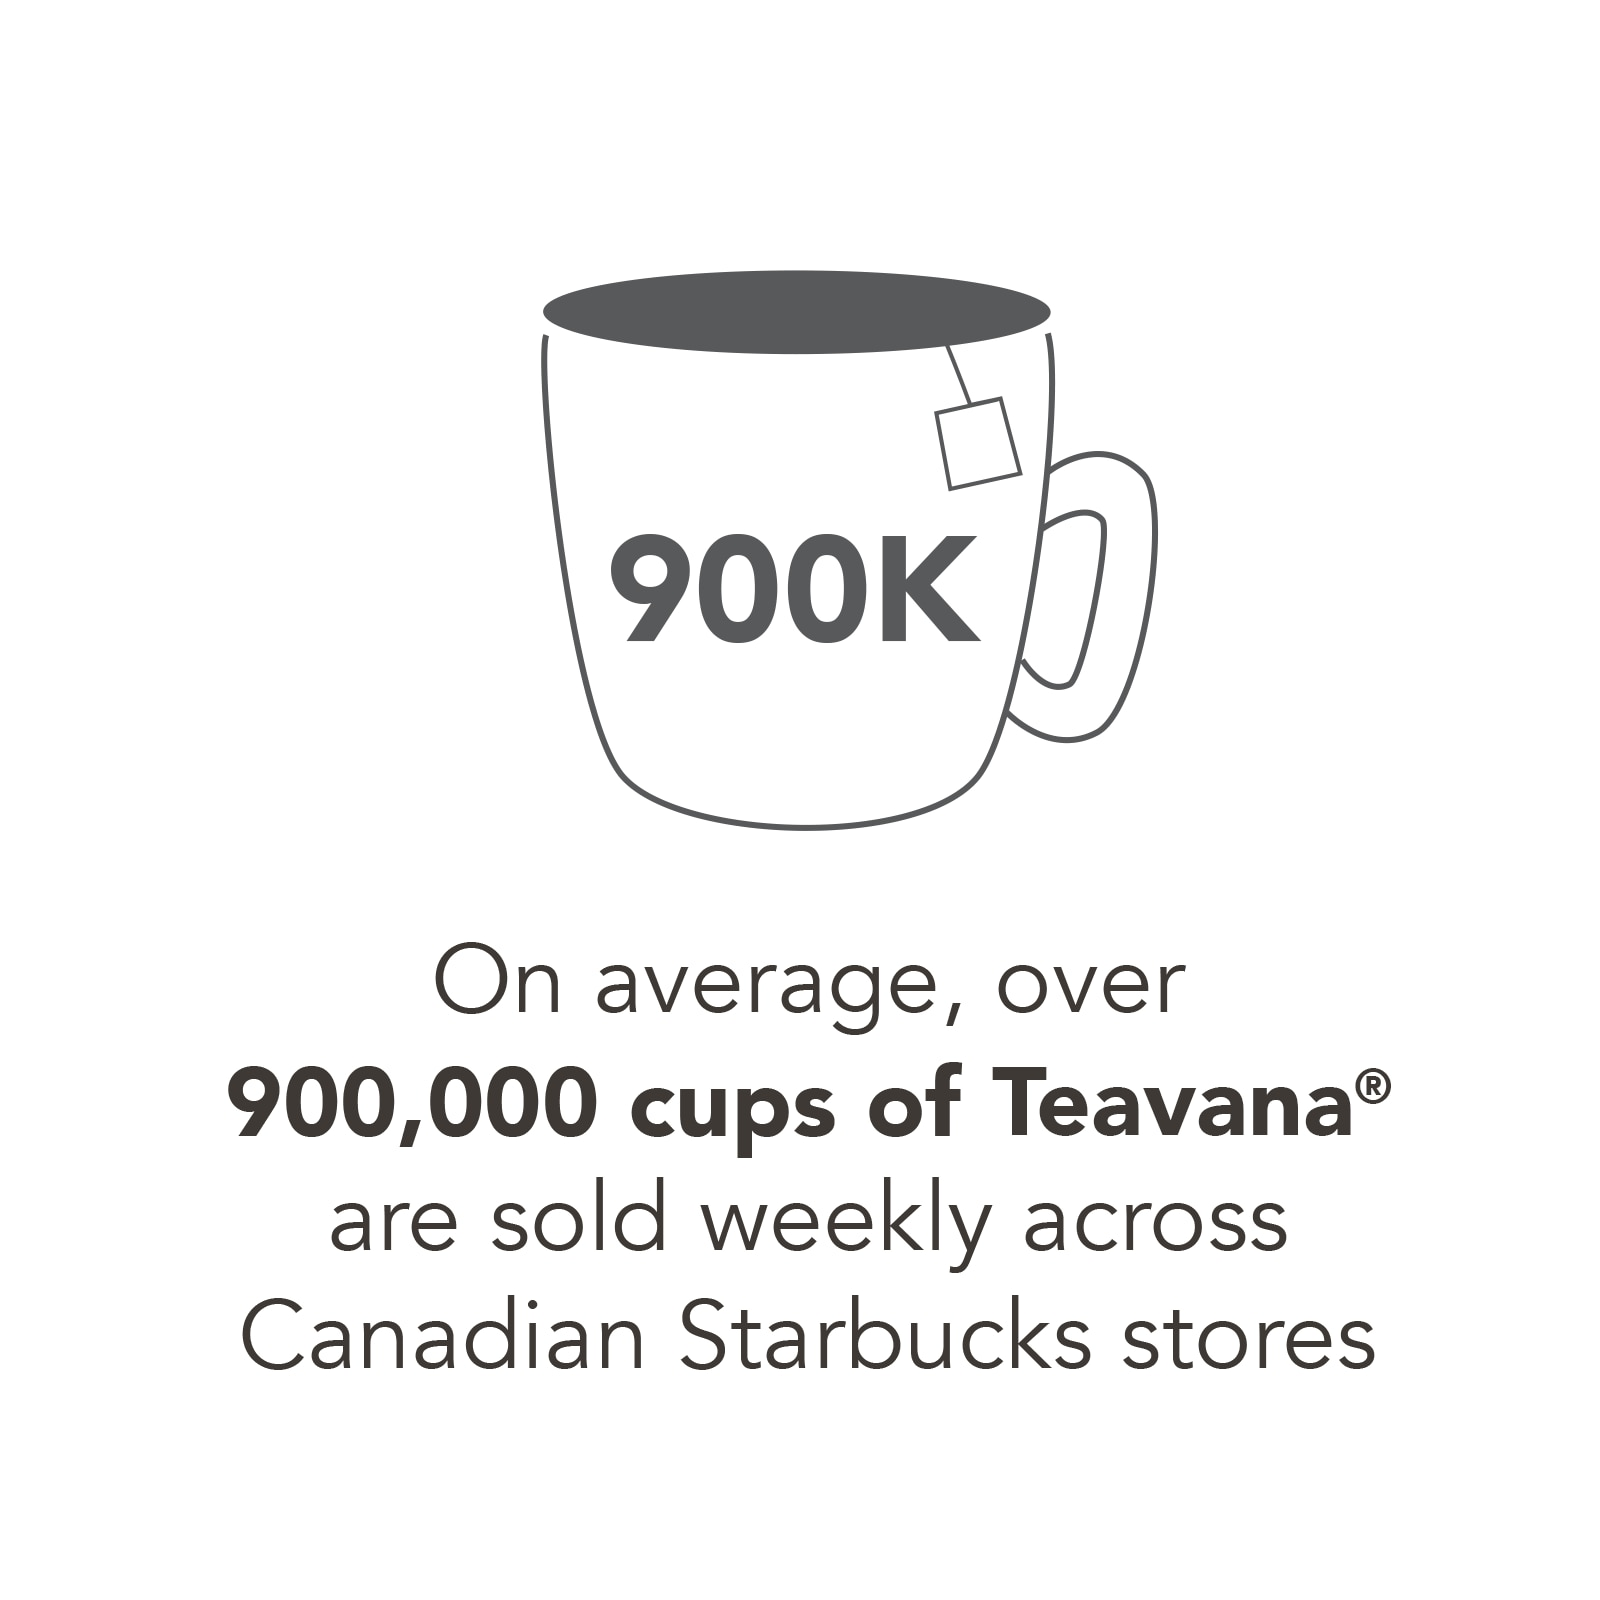 Over 6 million cups of Teavana teas are sold in 8,000+ U.S. Starbucks stores every week